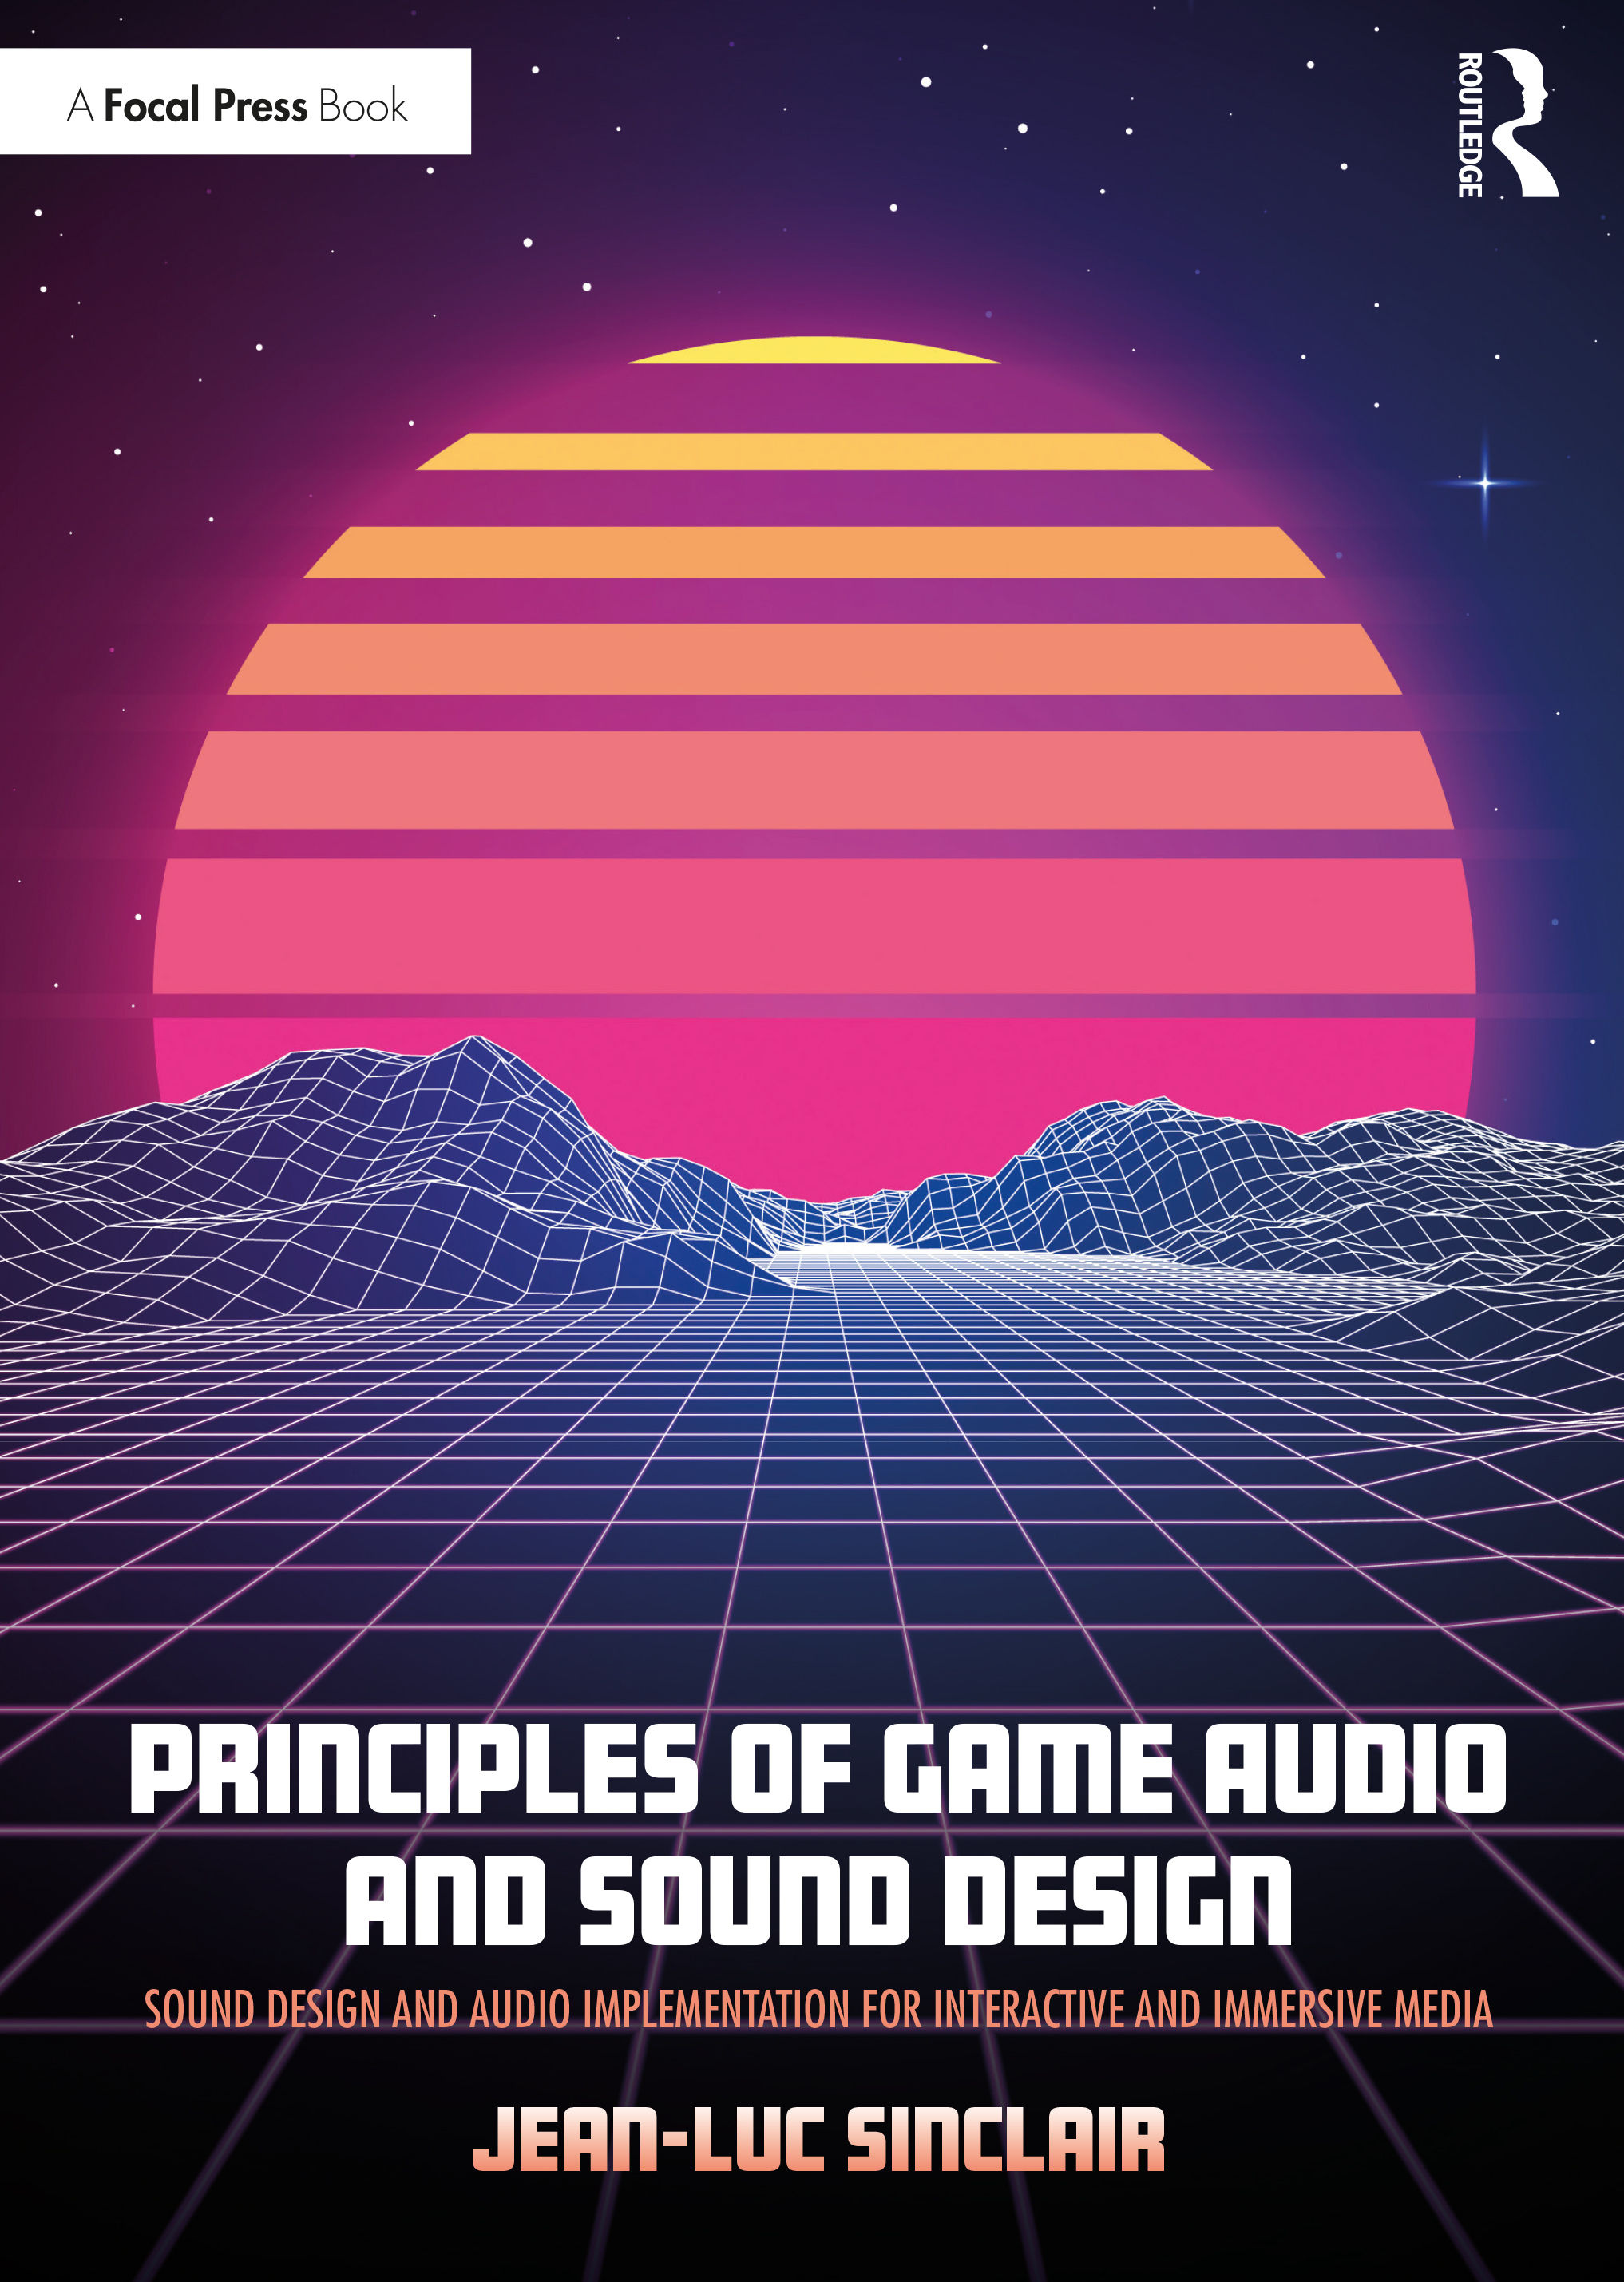 Principles of Game Audio and Sound Design: Sound Design and Audio Implementation for Interactive and Immersive Media book cover